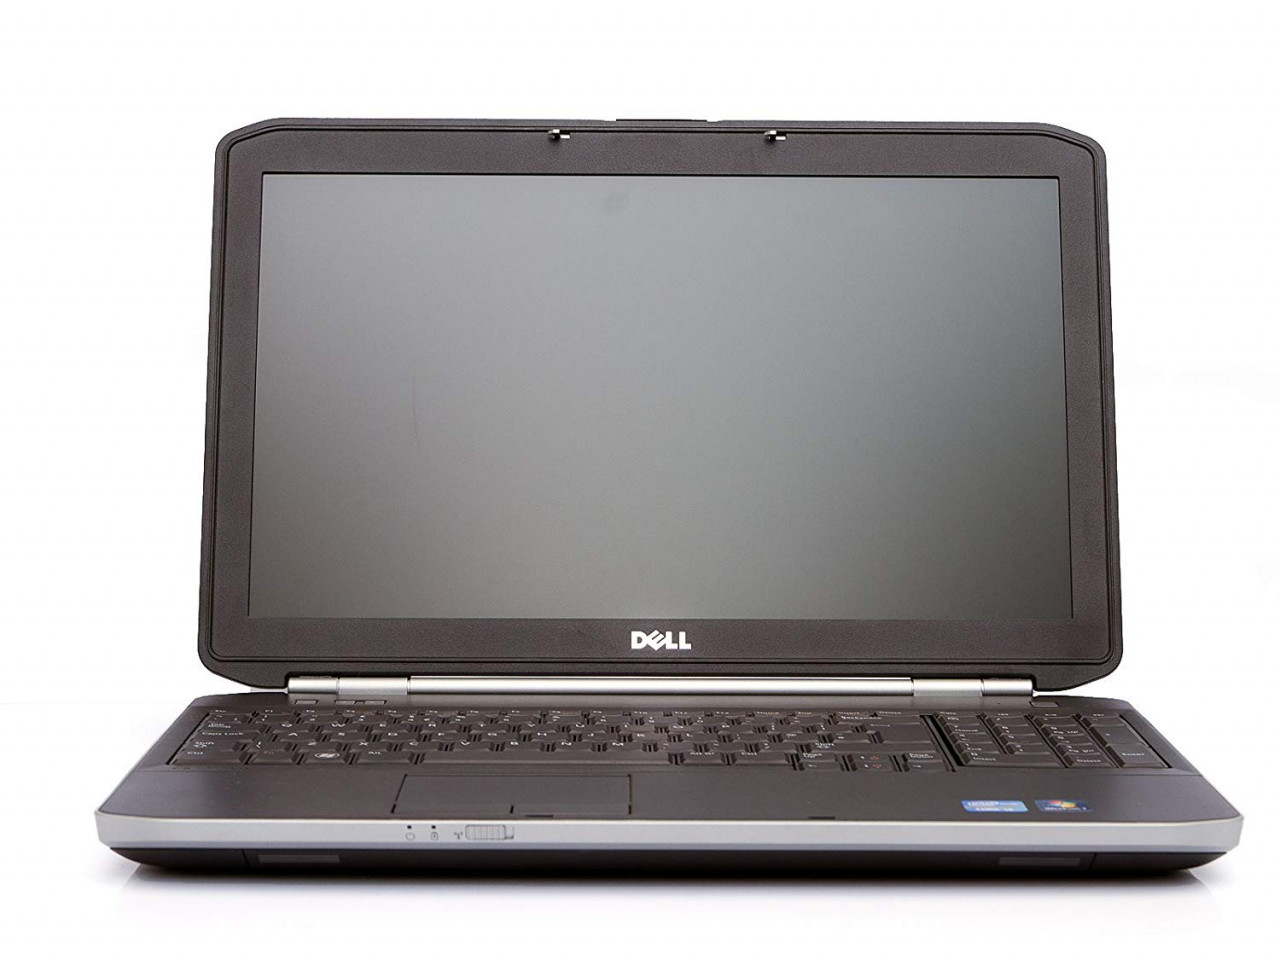 Laptop DELL Latitude E5520, Intel Core i5-2520M 2.50GHz, 4GB DDR3, 250GB SATA, 15.6 Inch